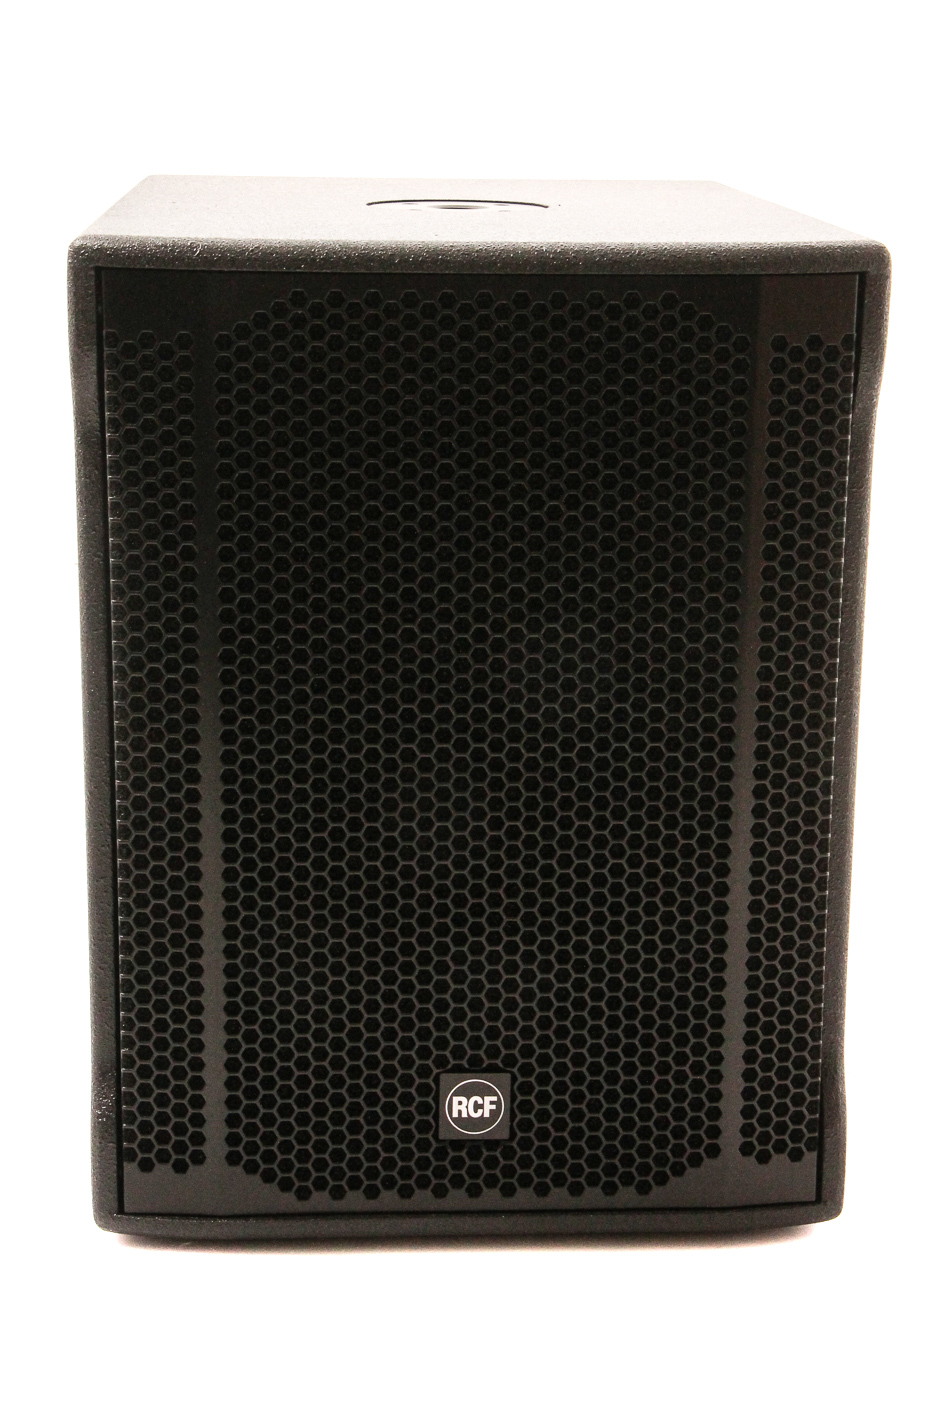 Supersaver Rcf Subwoofers Rental from $35 00/month - Musicorp Australia